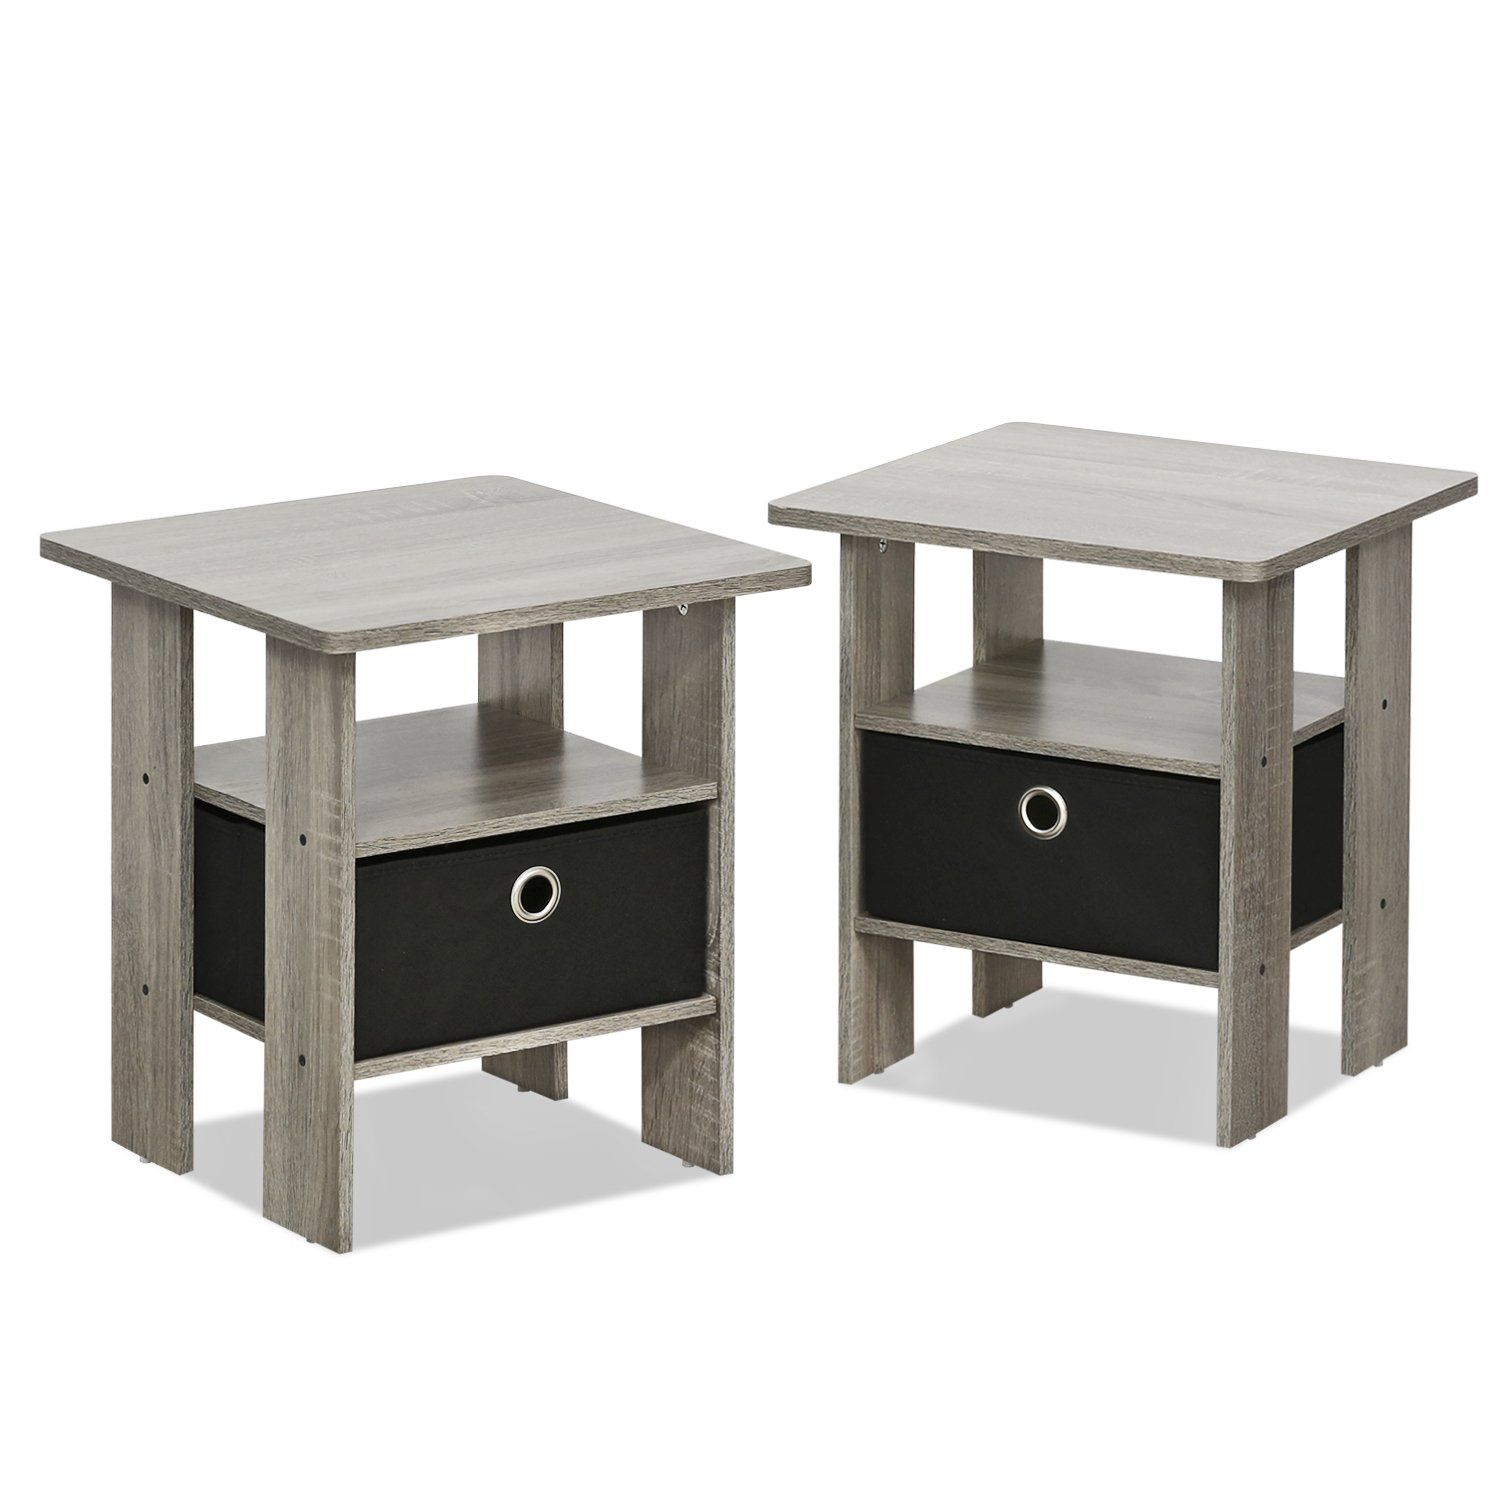 Amazon.com: Furinno 11157Gyw/Bk Night Stand, 1 End Table ...